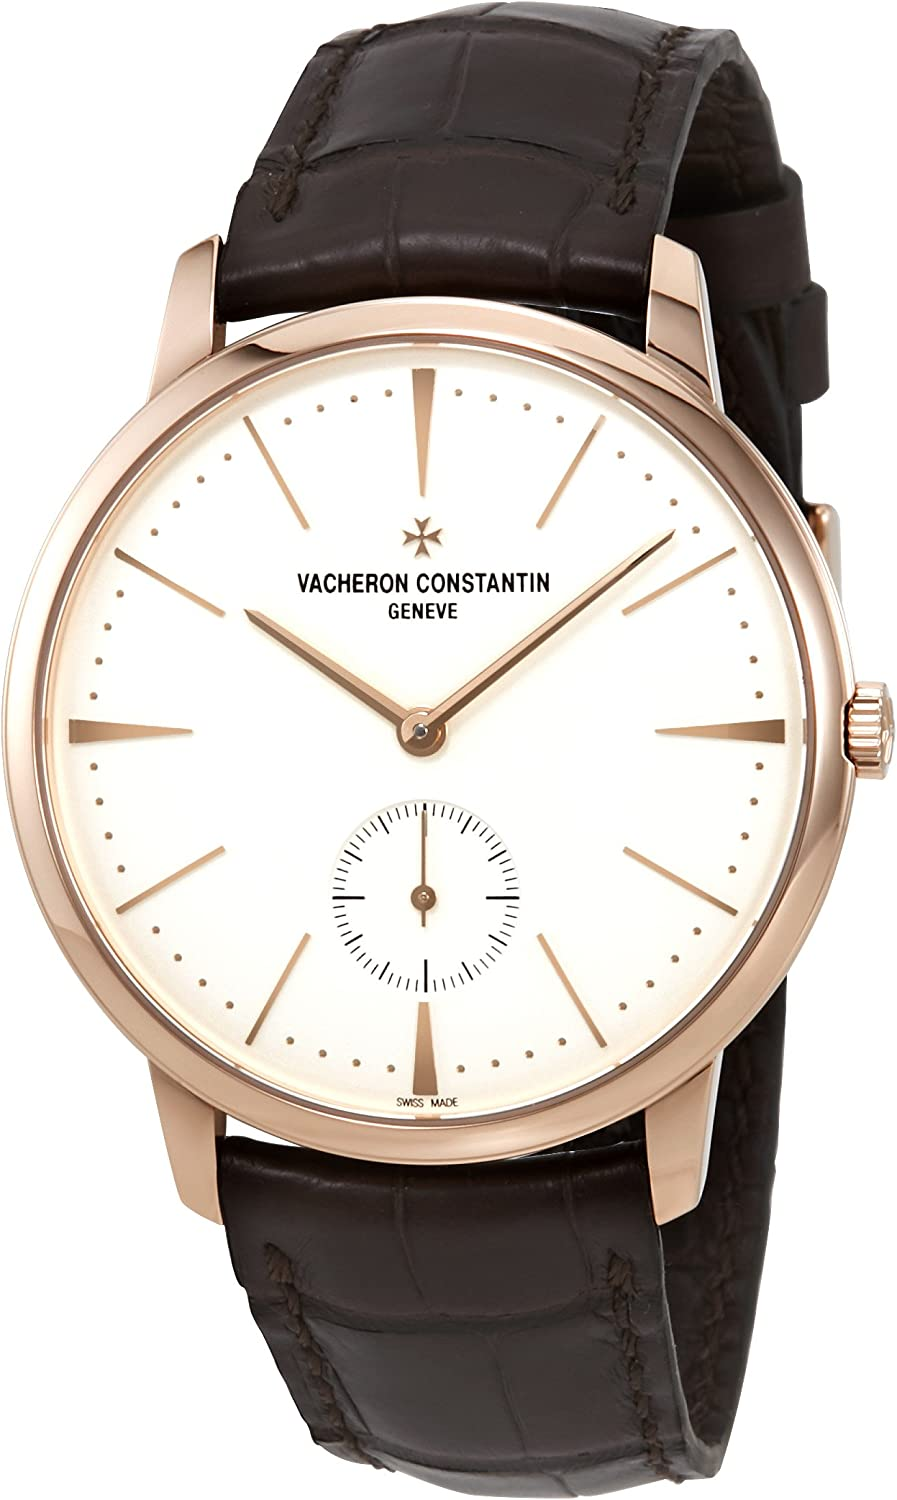 Vacheron Constantin Silver Dial 18 Carat Rose Gold Mens Watch 1110U/000R-B085